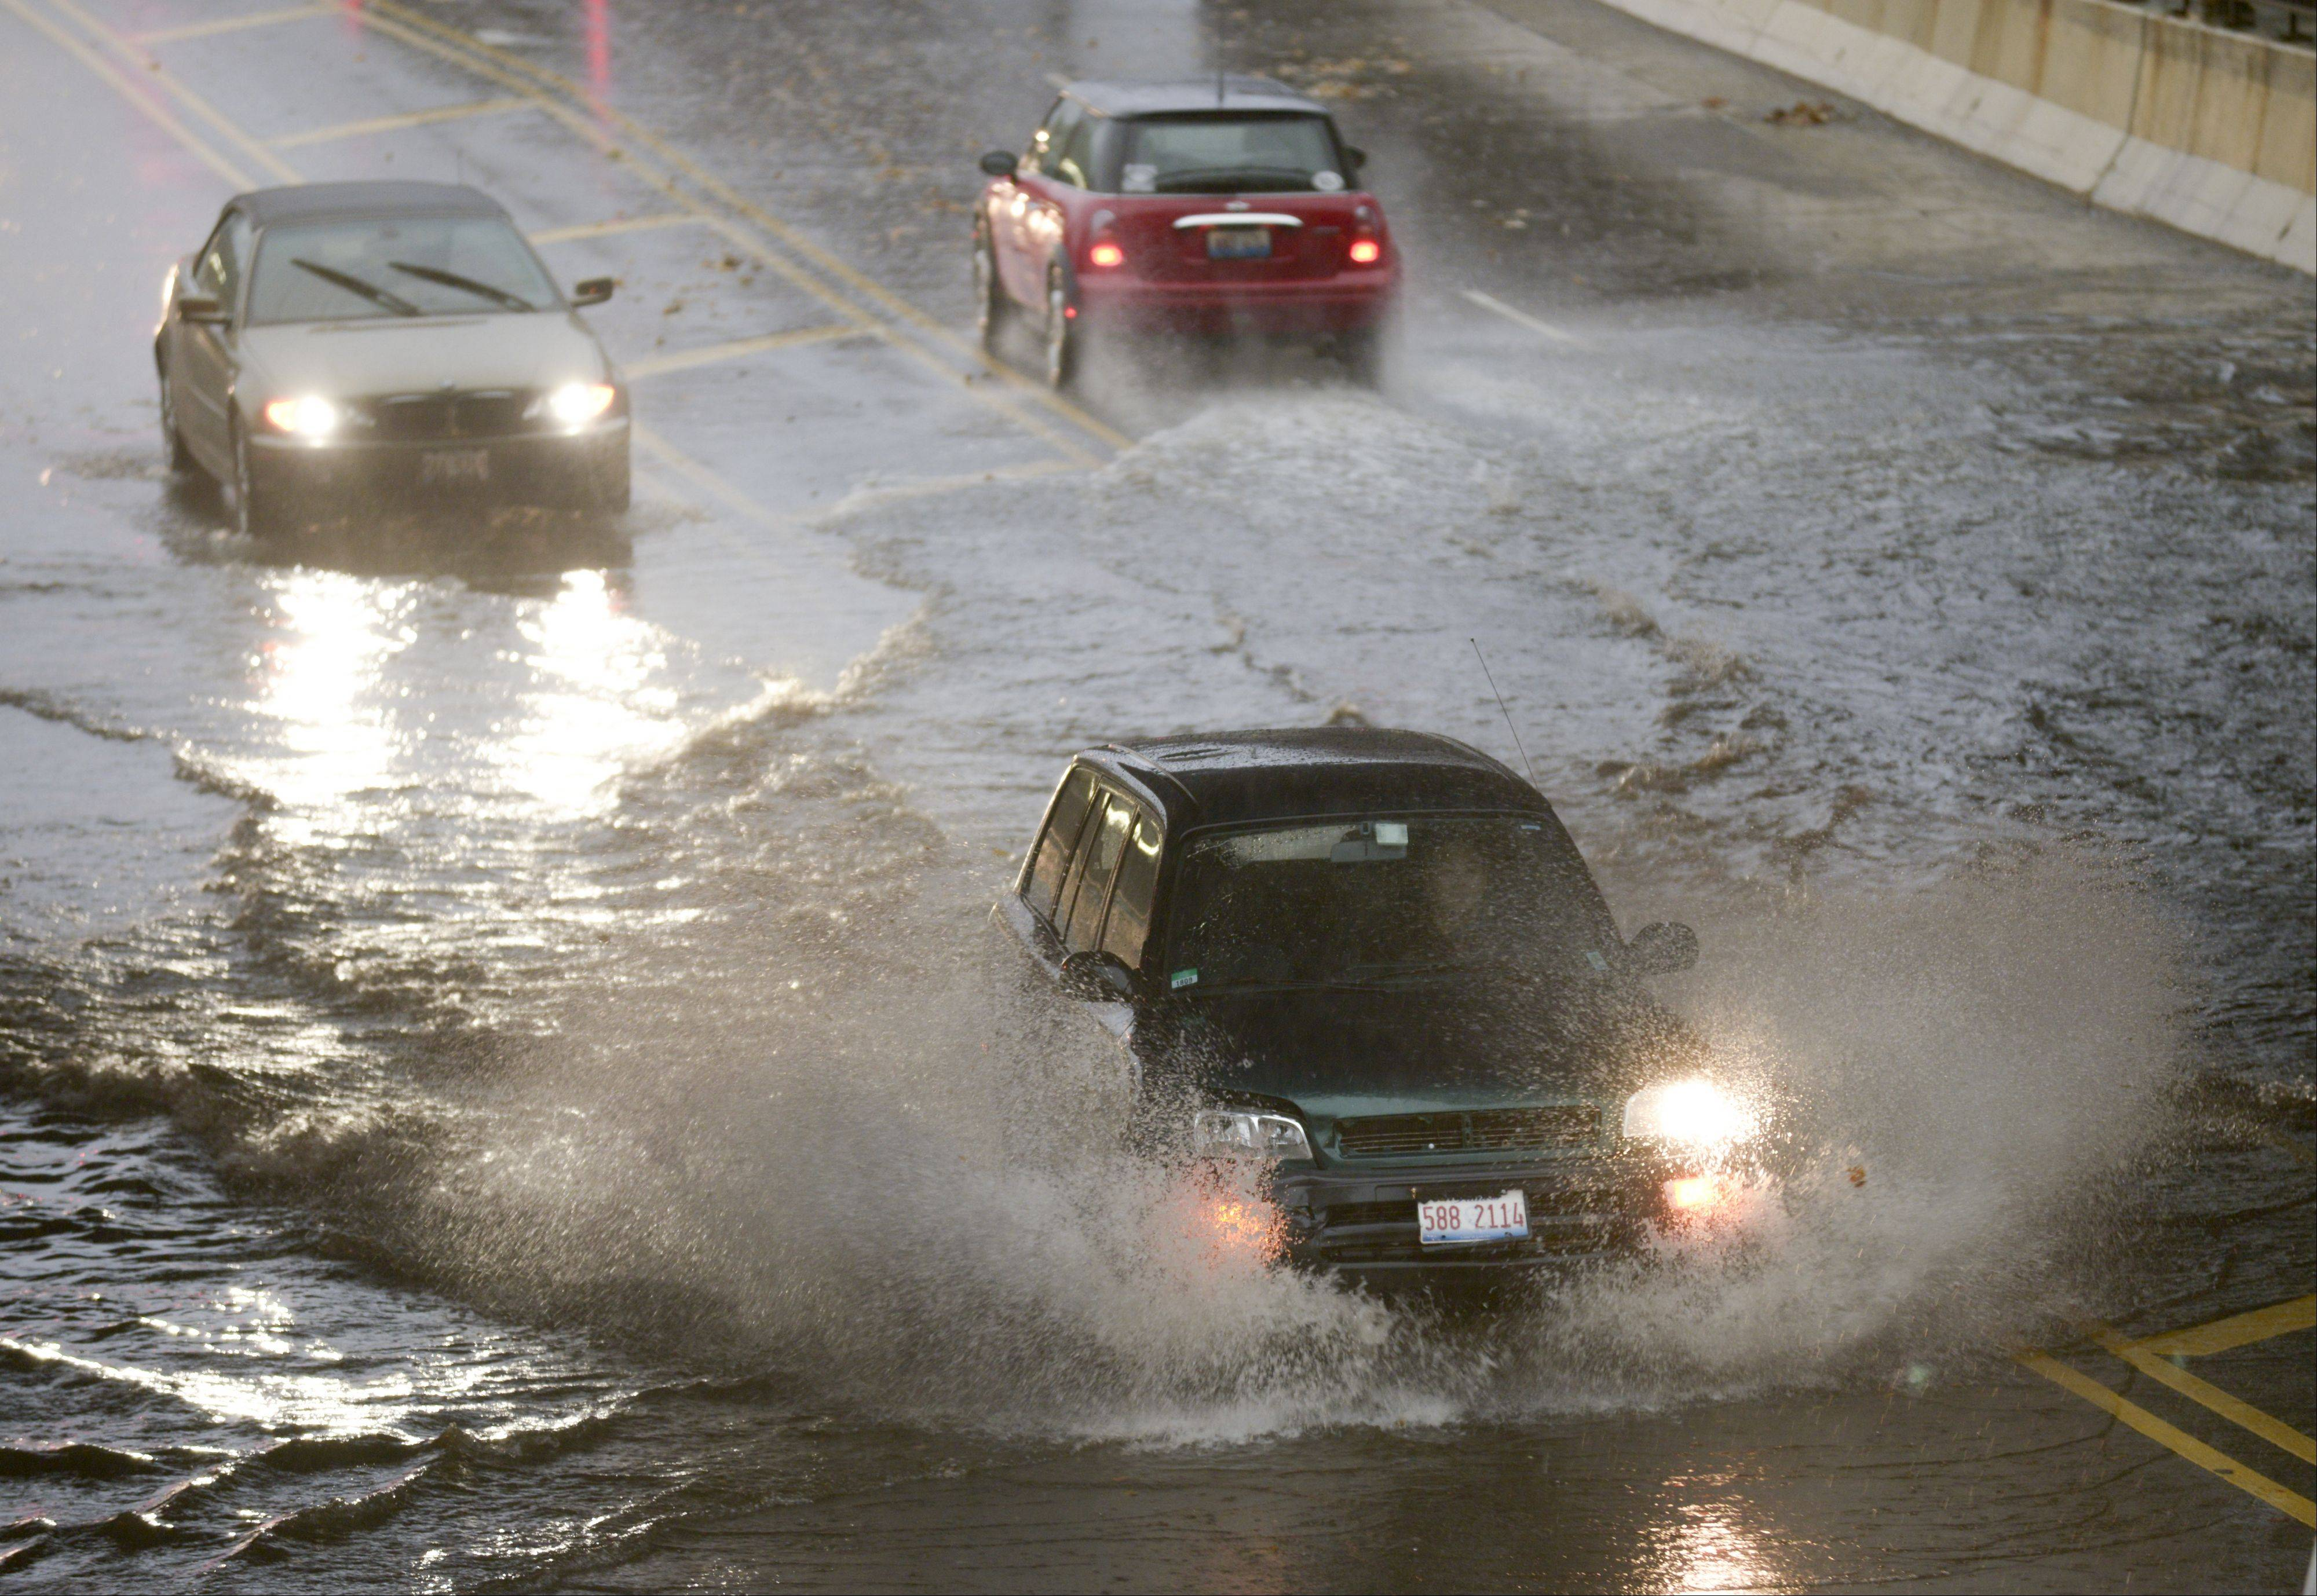 Cars slowly make their way through the flooded underpass on Washington Street under the railroad tracks in Naperville on Sunday. Despite heavy rains and high winds, the Chicago area was spared the worst of the storms that tore through the Midwest on Sunday.